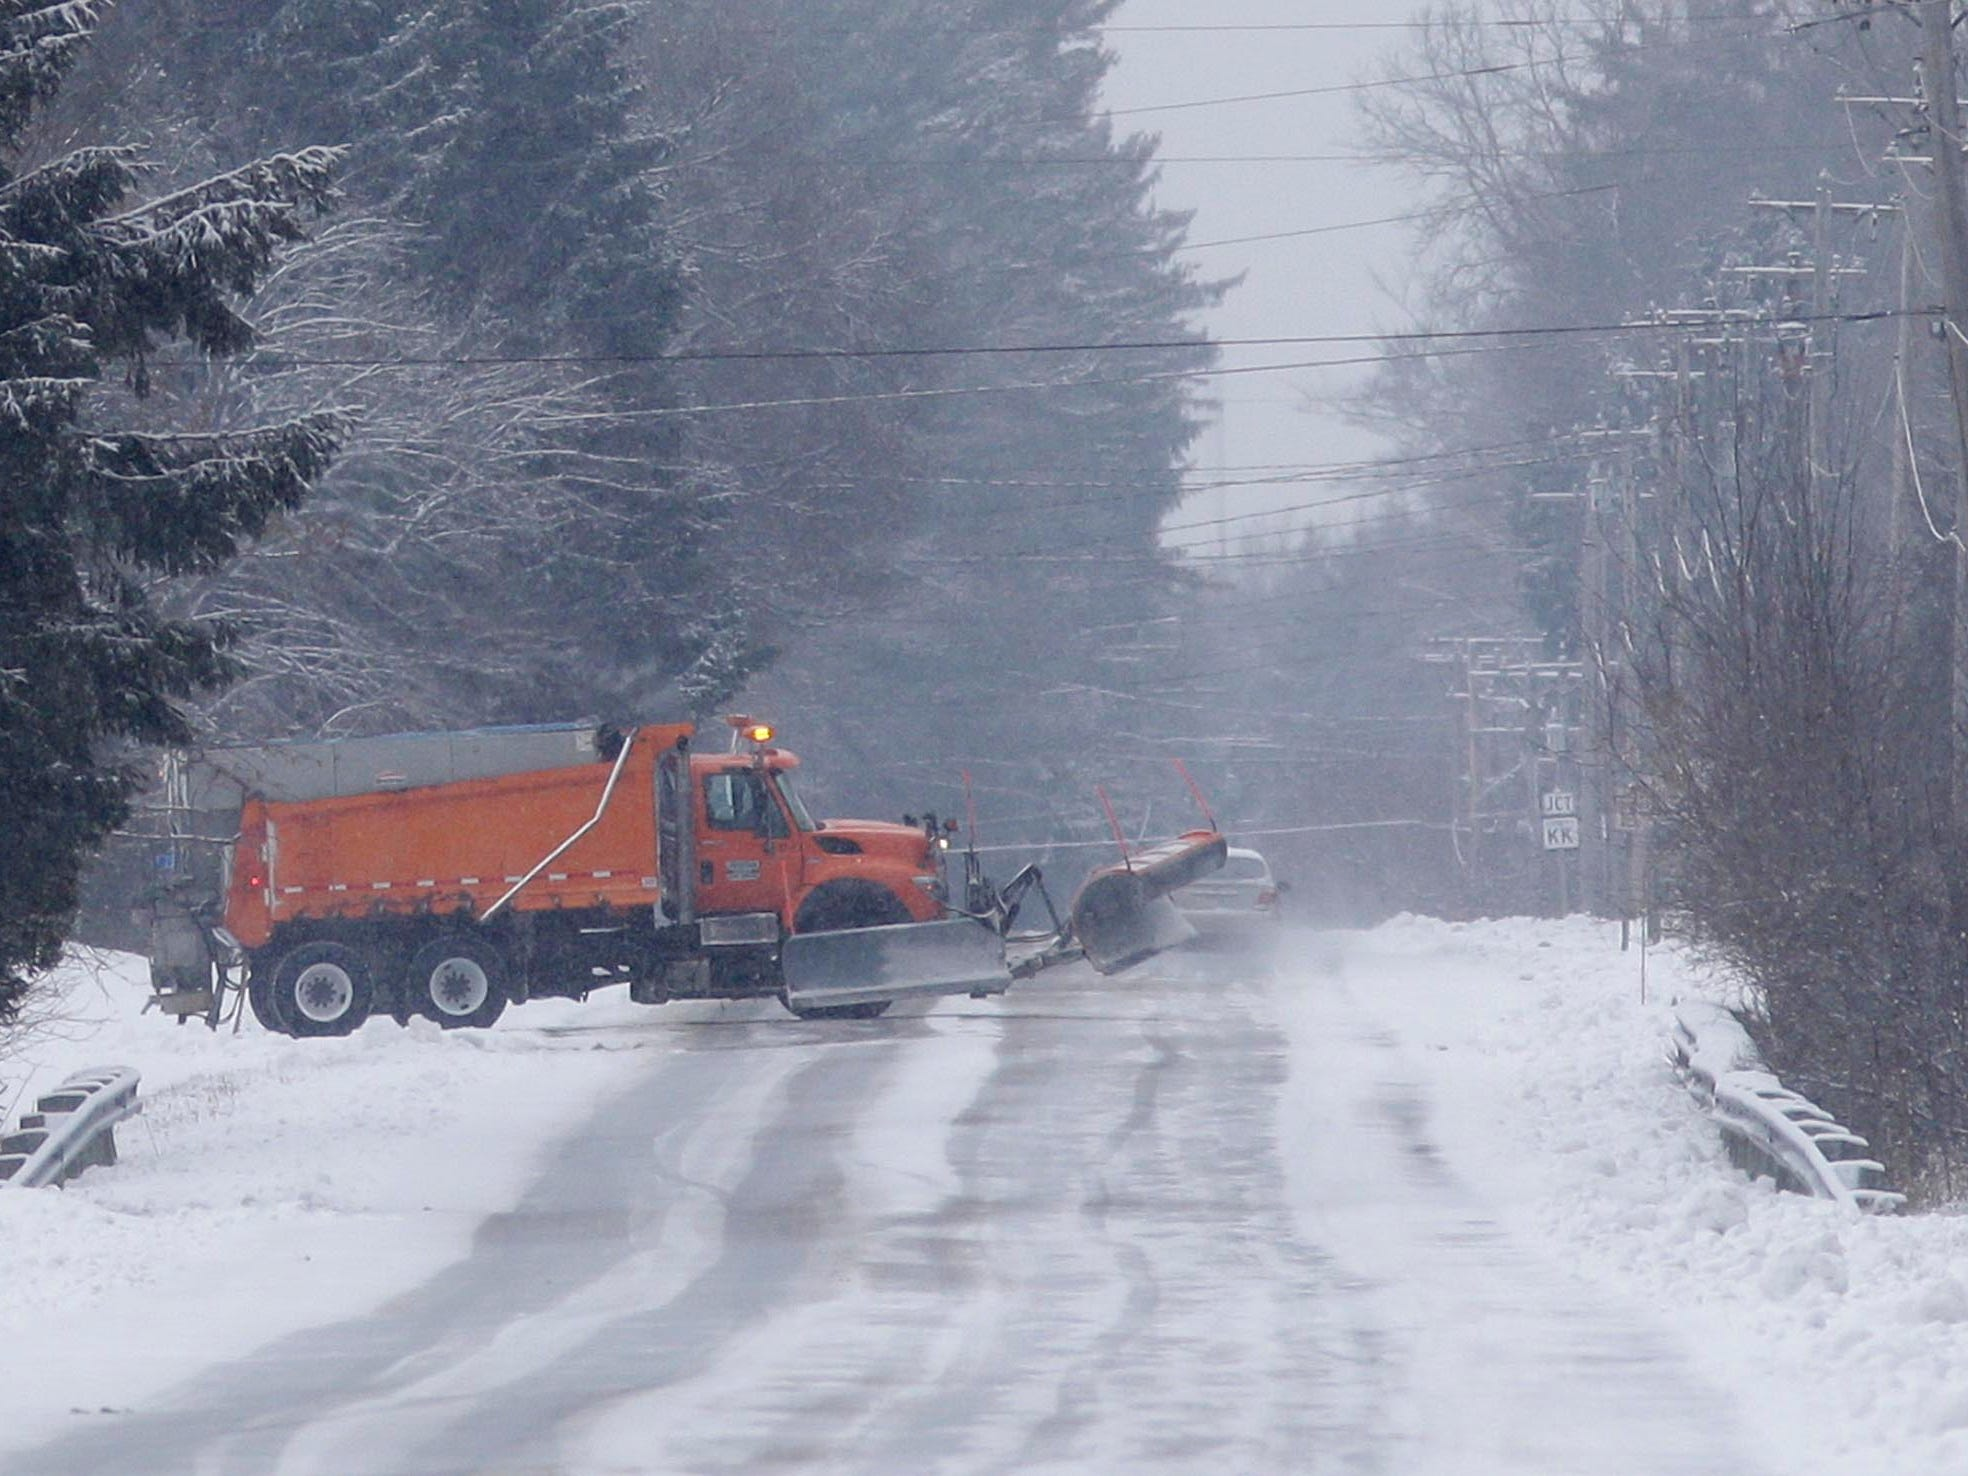 A snow plow turns around on South 12th Street, Wednesday, January 2, 2019, in Sheboygan, Wis.